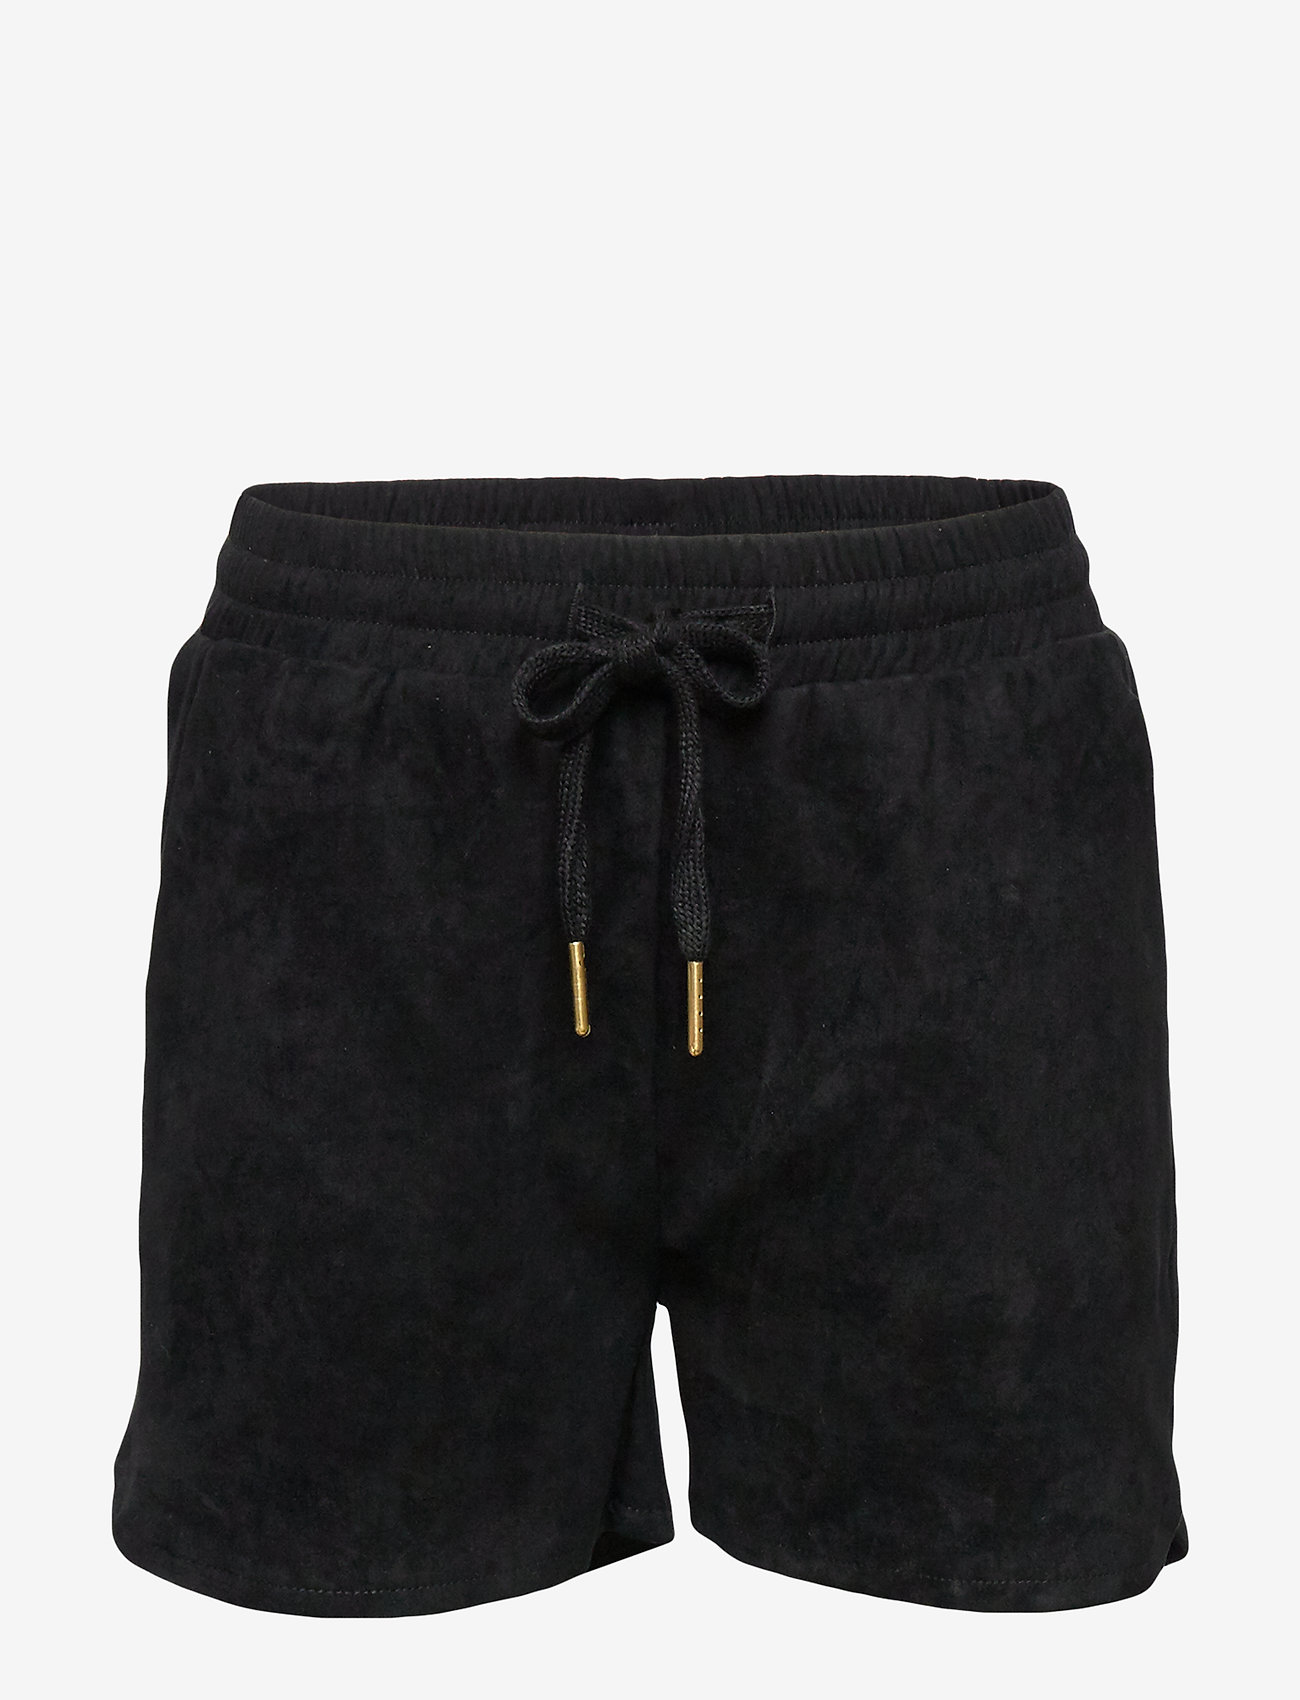 Petit by Sofie Schnoor - Shorts - shorts - black - 0